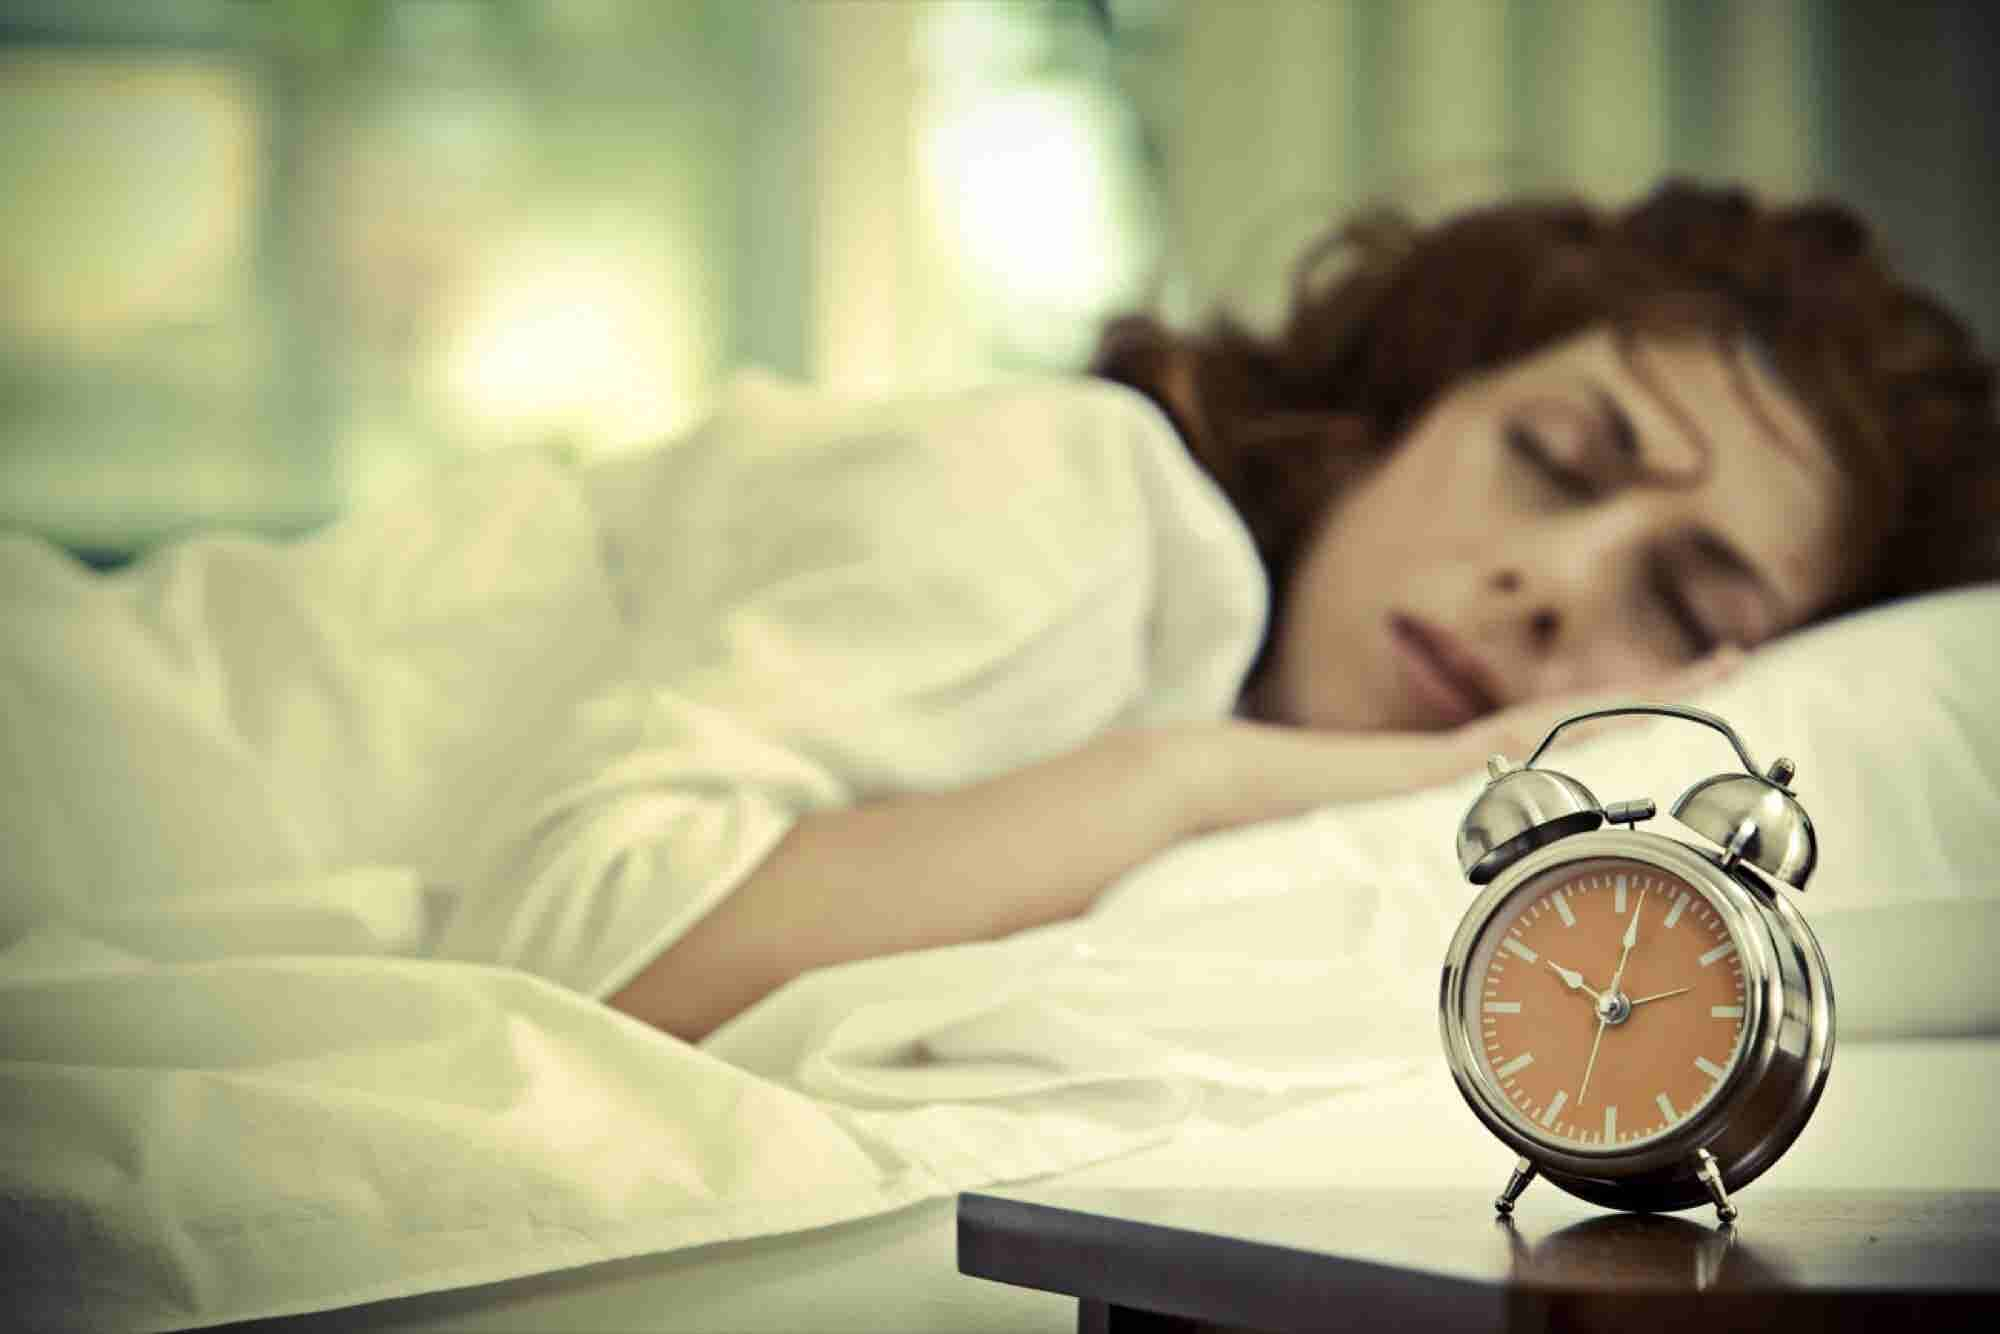 Less Sleep May Mean More Risk of Colds and Infections